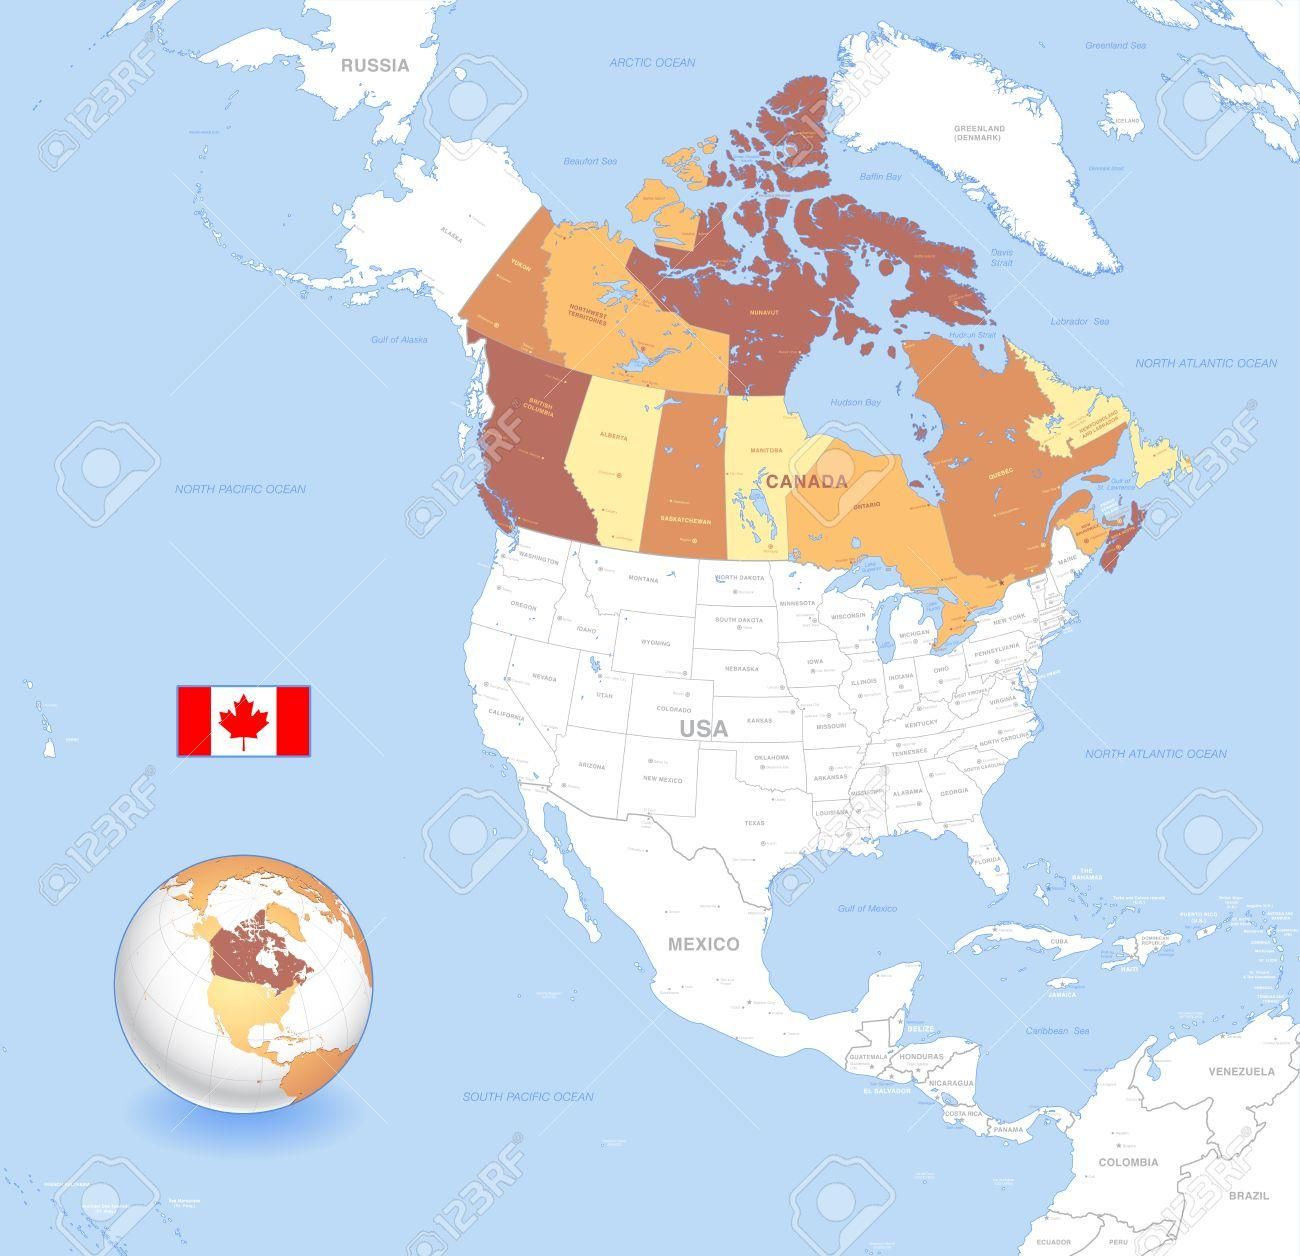 Map Of Canada On Globe.Atlas Map Of Canada Canada Globe Map Northern America Americas